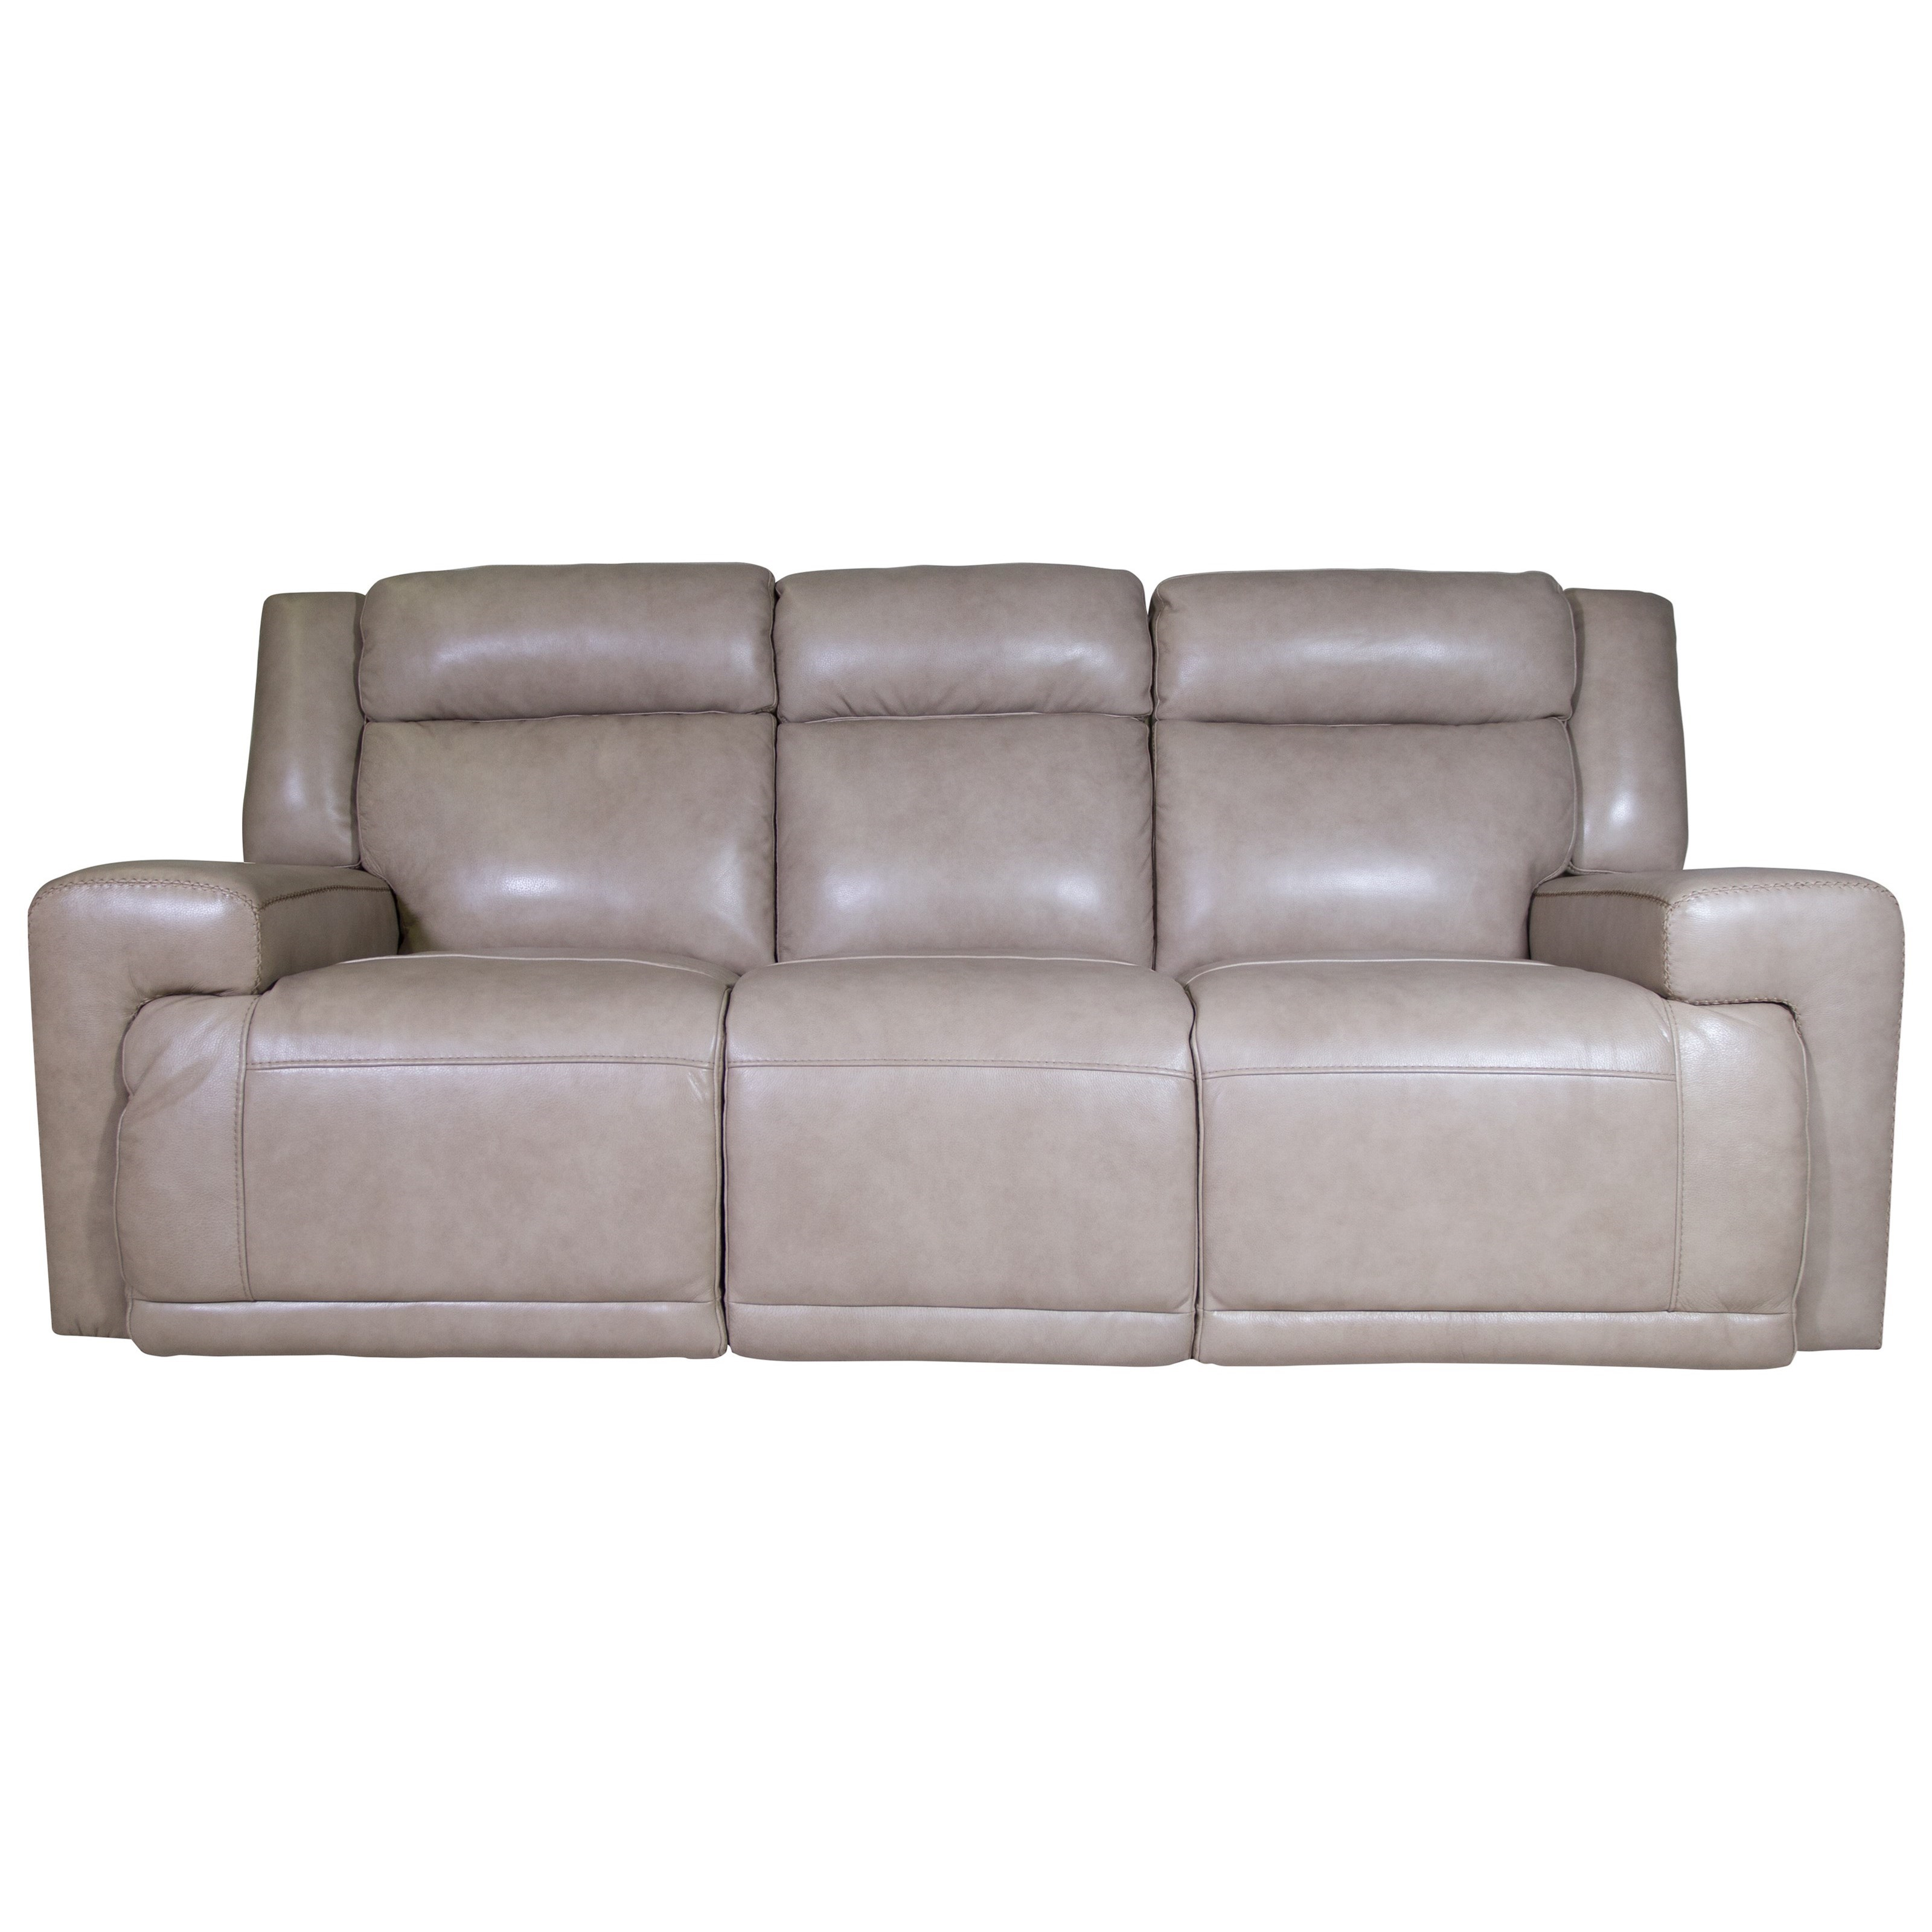 Futura Leather Burke Power Reclining Sofa HomeWorld Furniture